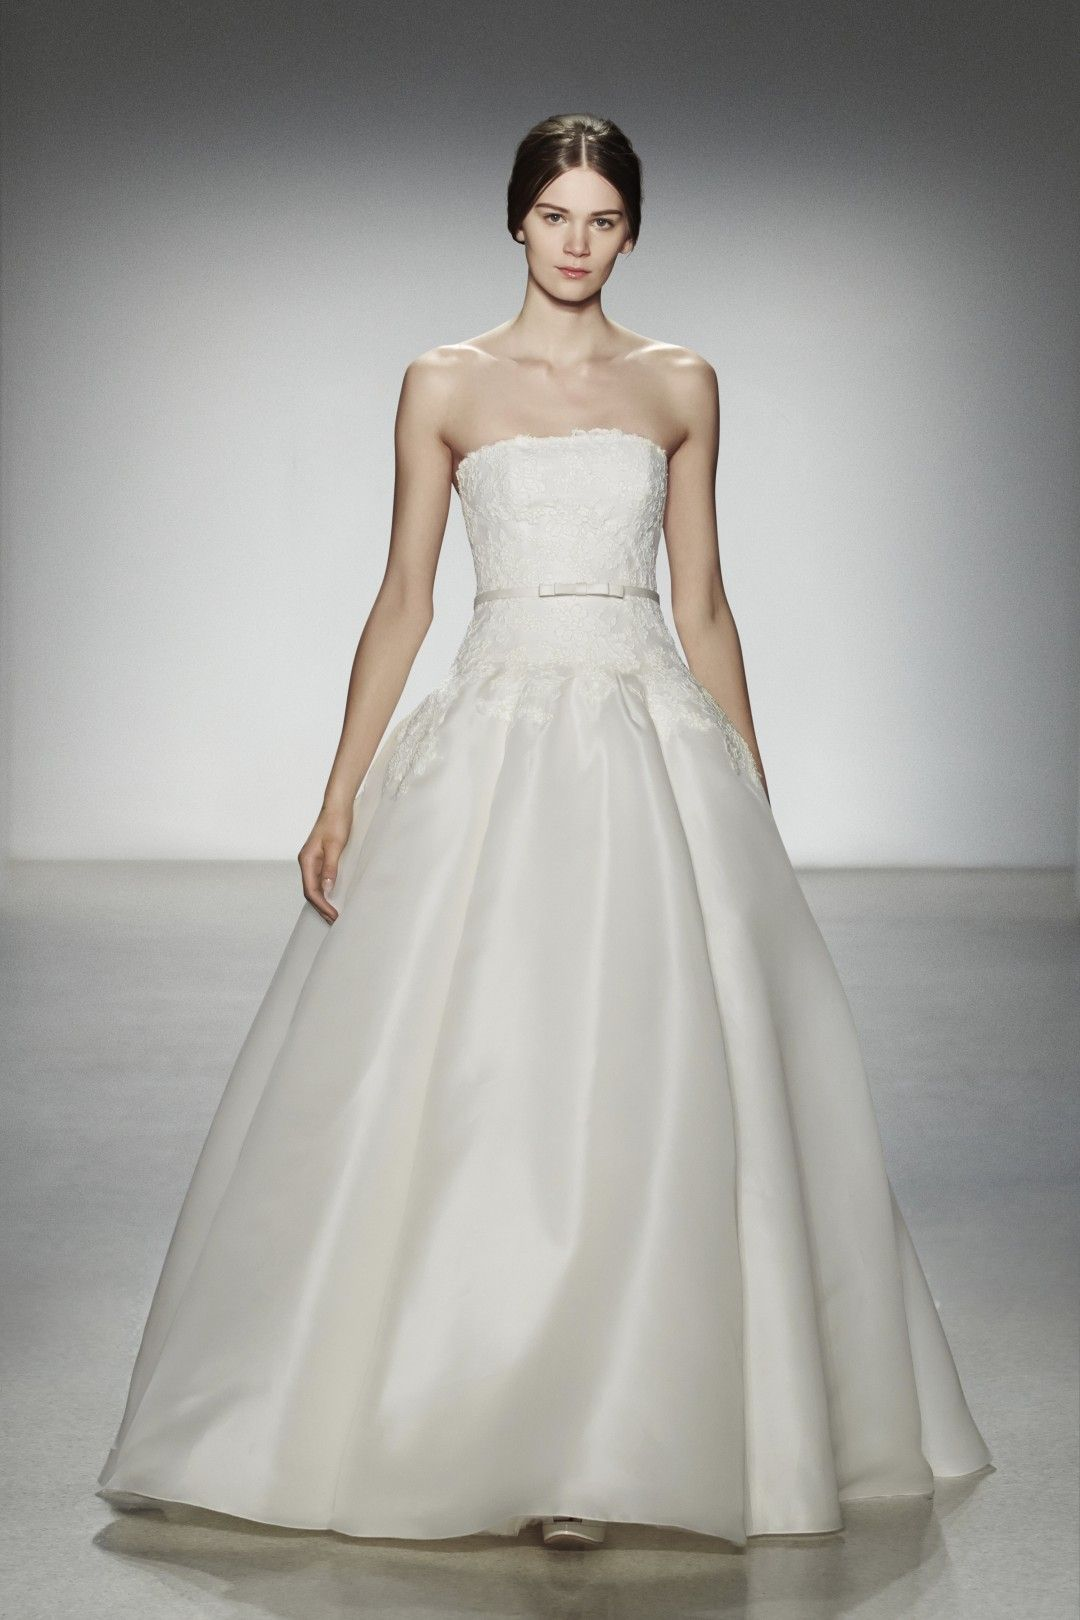 What Type Of Wedding Dress Should You Get